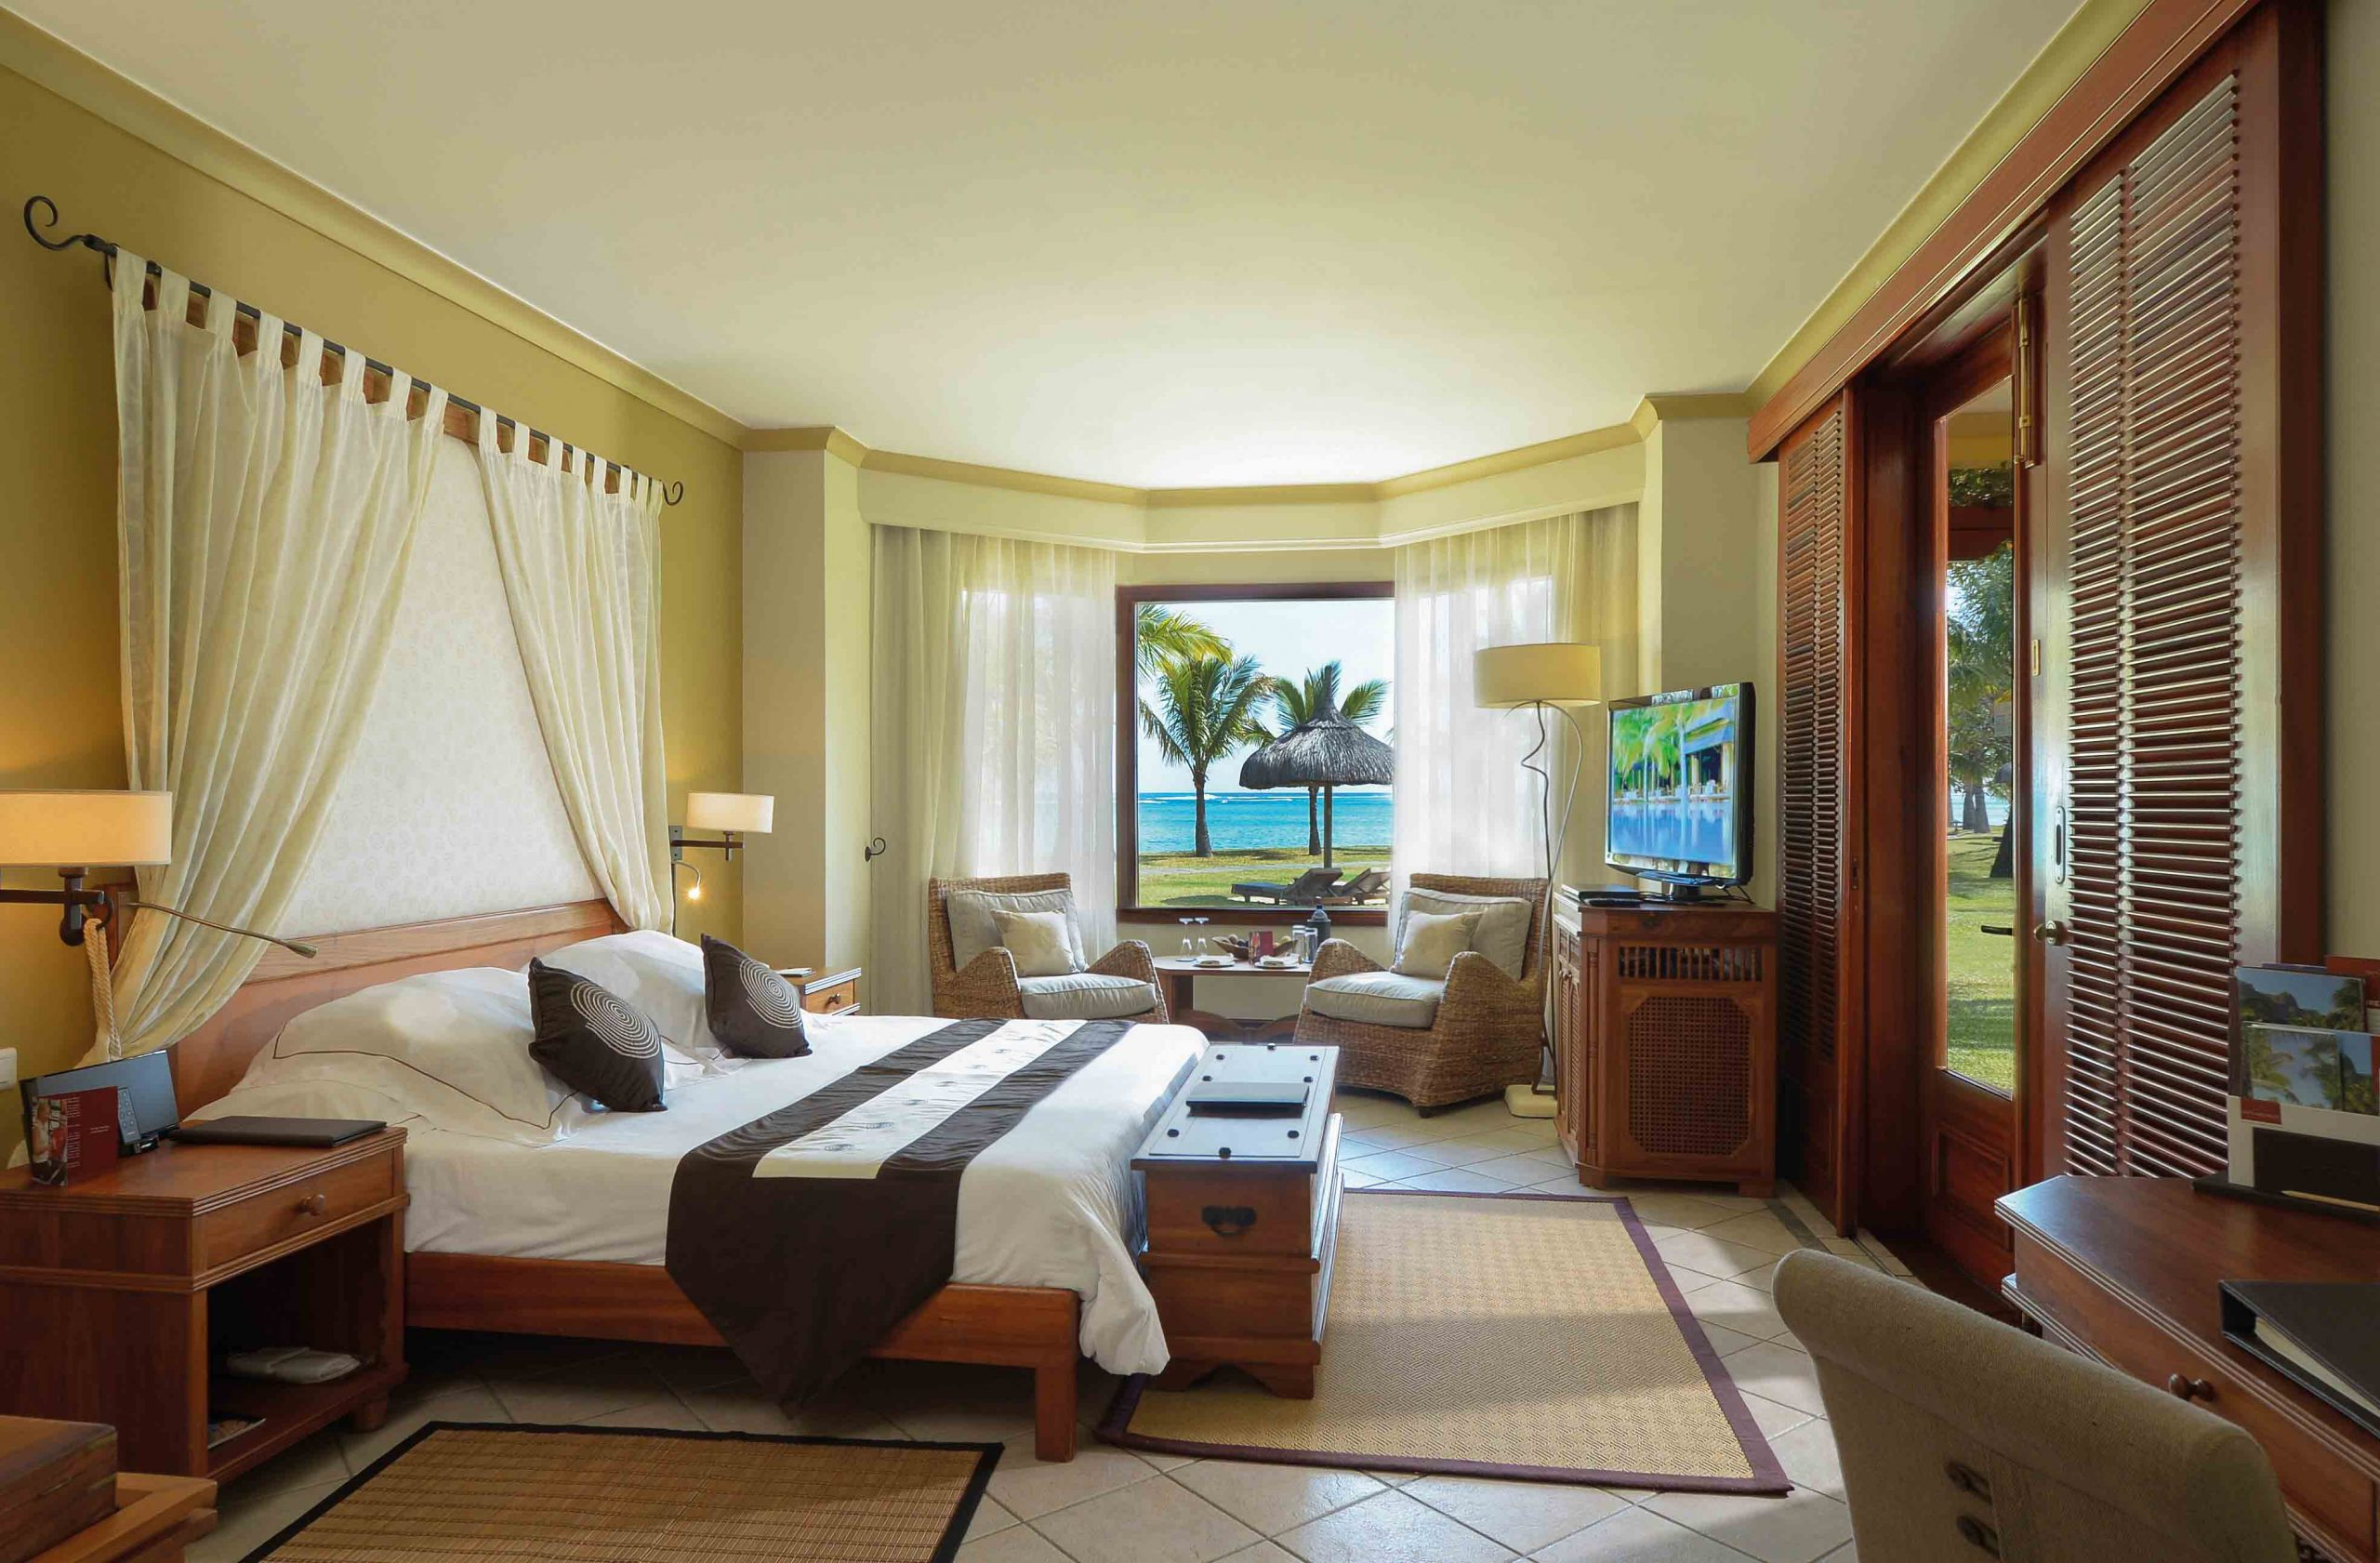 Beachcomber Hotels & Resorts; Mauritius; Île Maurice; Dinarobin Hotel Golf & Spa; 5-star; All-inclusive; Travel; Voyage; Tourism; Tourisme; Holiday; Vacation Mauritius Accommodation Dinarobin Hotel Golf & Spa  Beach accommodation African Travel Specialists Africa